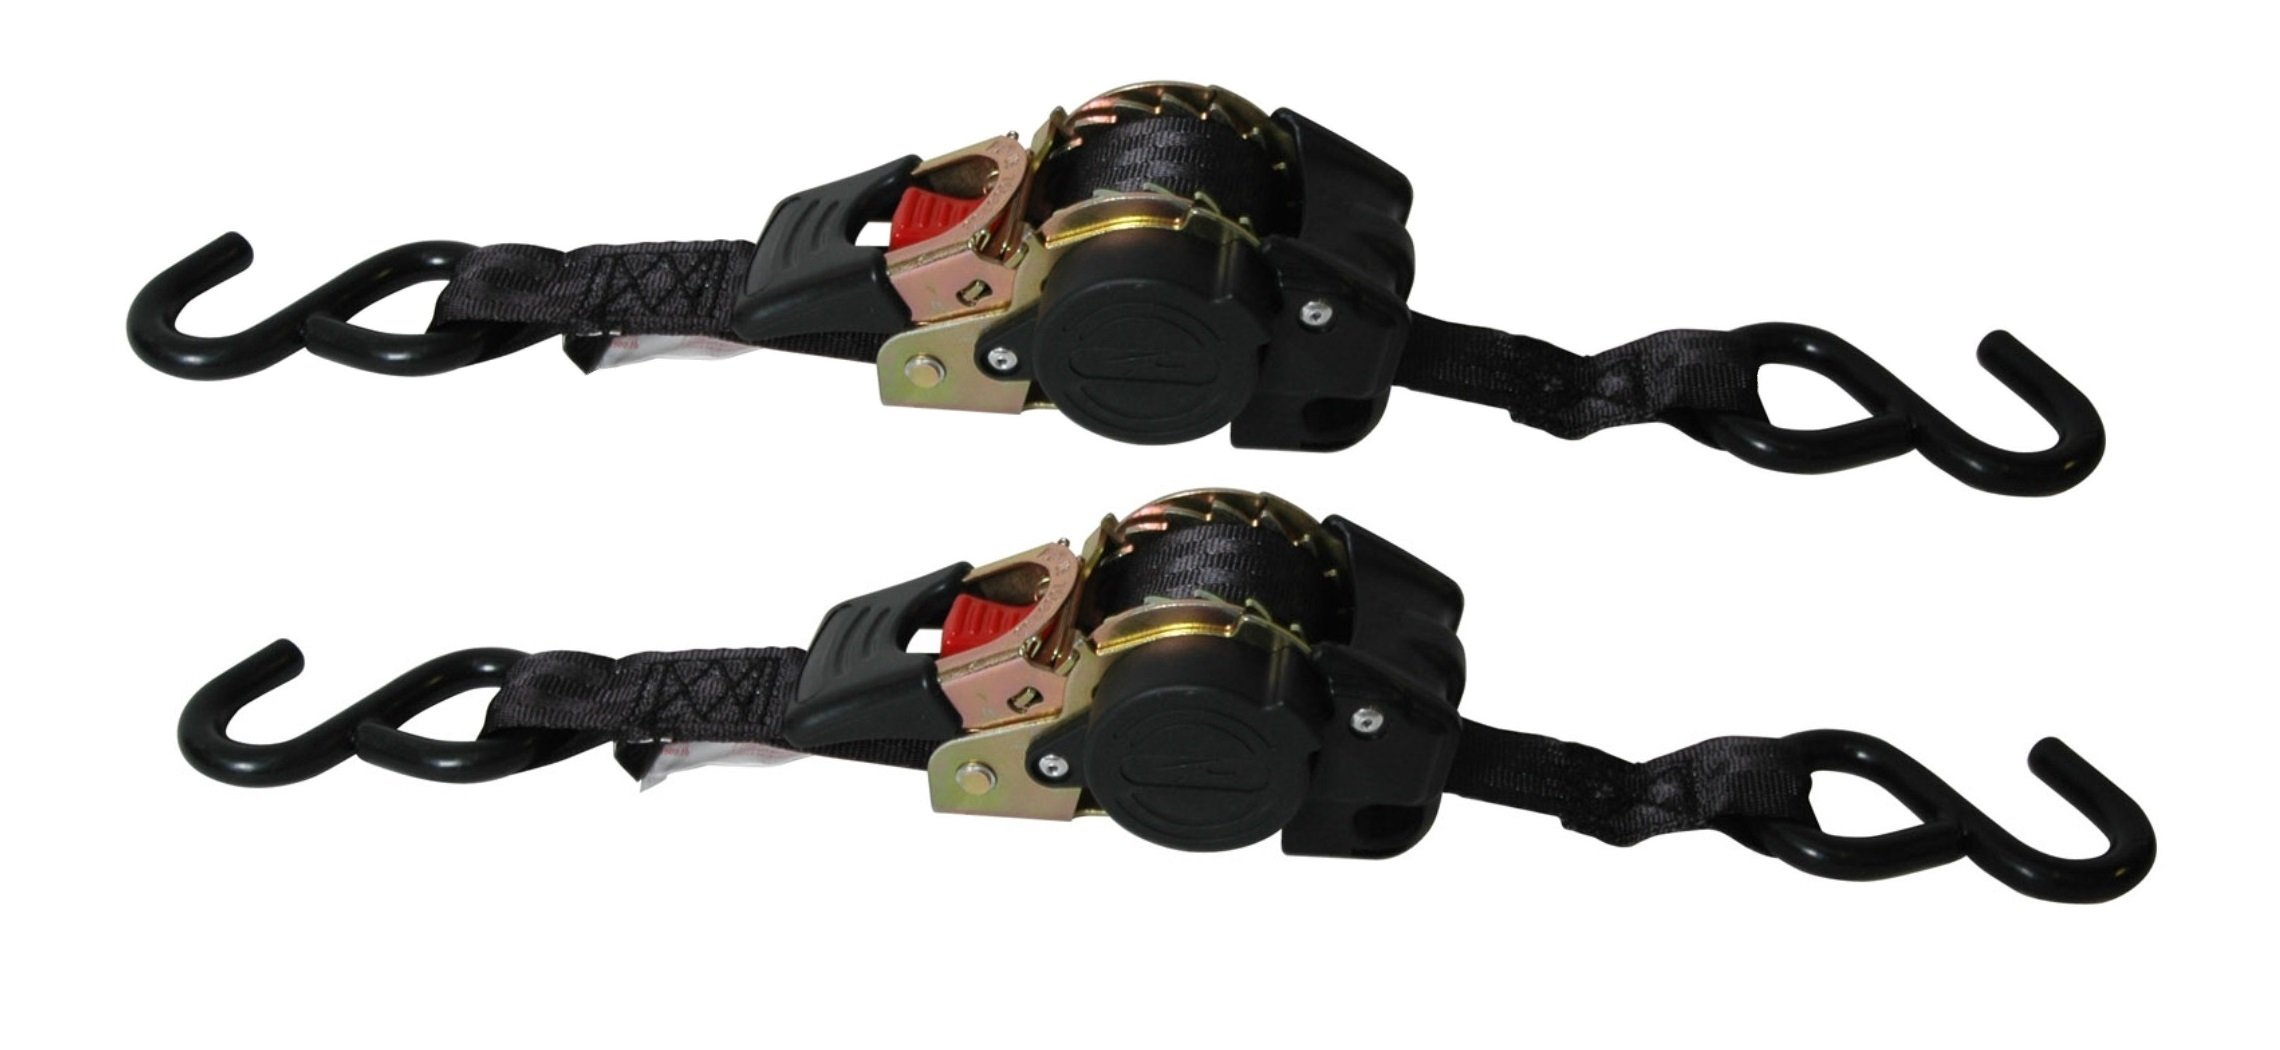 Reese Carry Power 9425500 Black 6' Retractable Ratchet Tie Down - 2 Piece by Reese Towpower